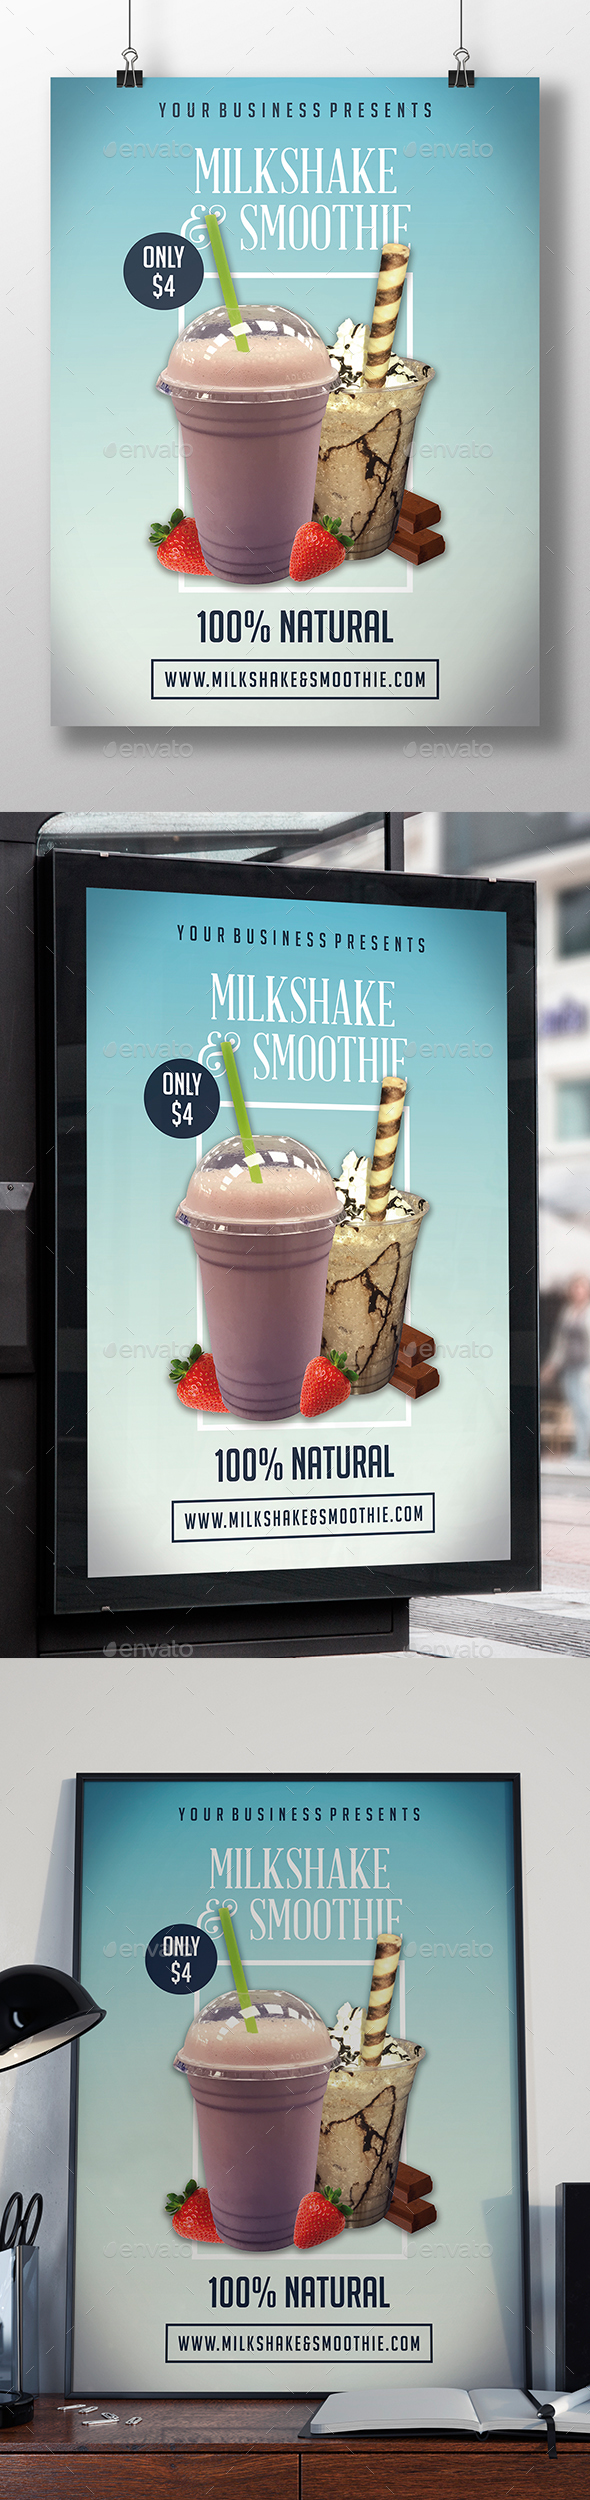 Milkshake & Smoothie Flyer Template - Miscellaneous Events